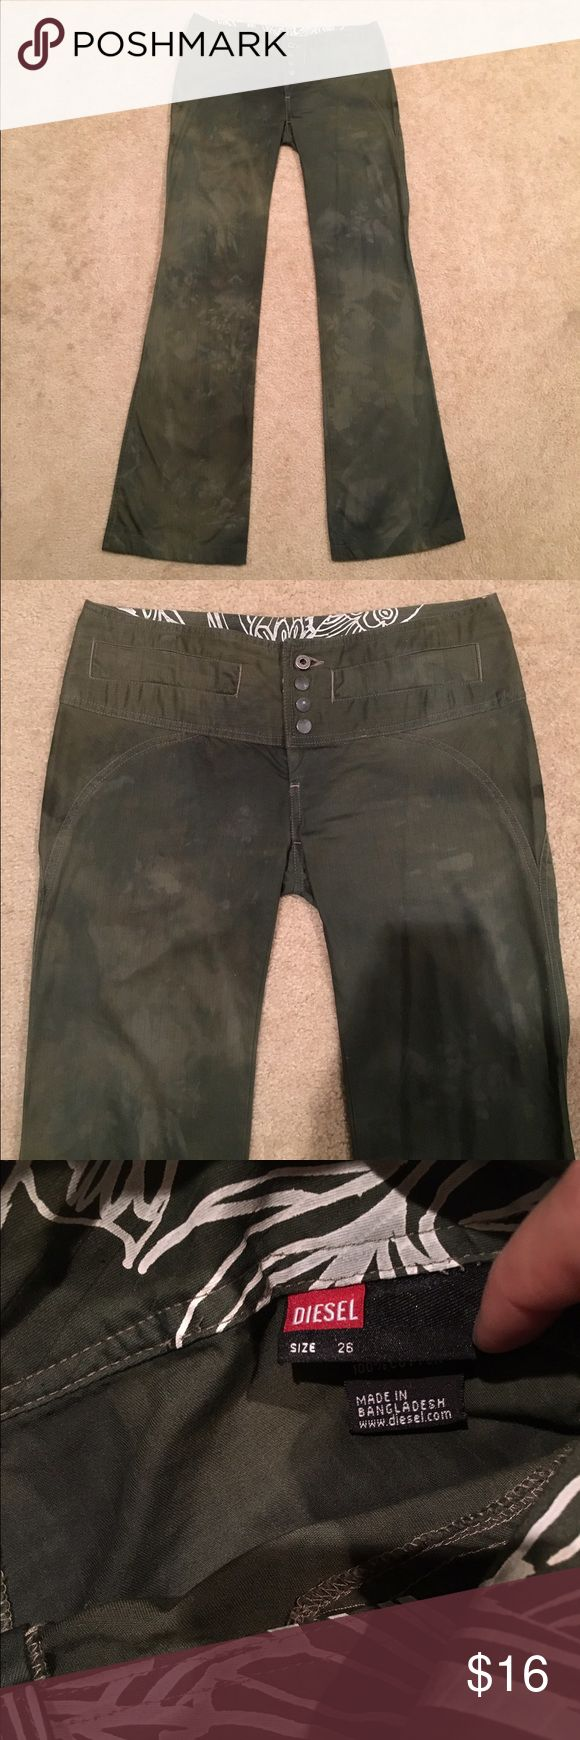 Diesel Pants Selling these great Diesel pants in dark Green. The color is intentionally made to look like this and they look amazing on. Flared leg and button closure. Only wore them twice... they are old school. Size says 26, however definitely fits closer to a 27. Diesel Pants Boot Cut & Flare